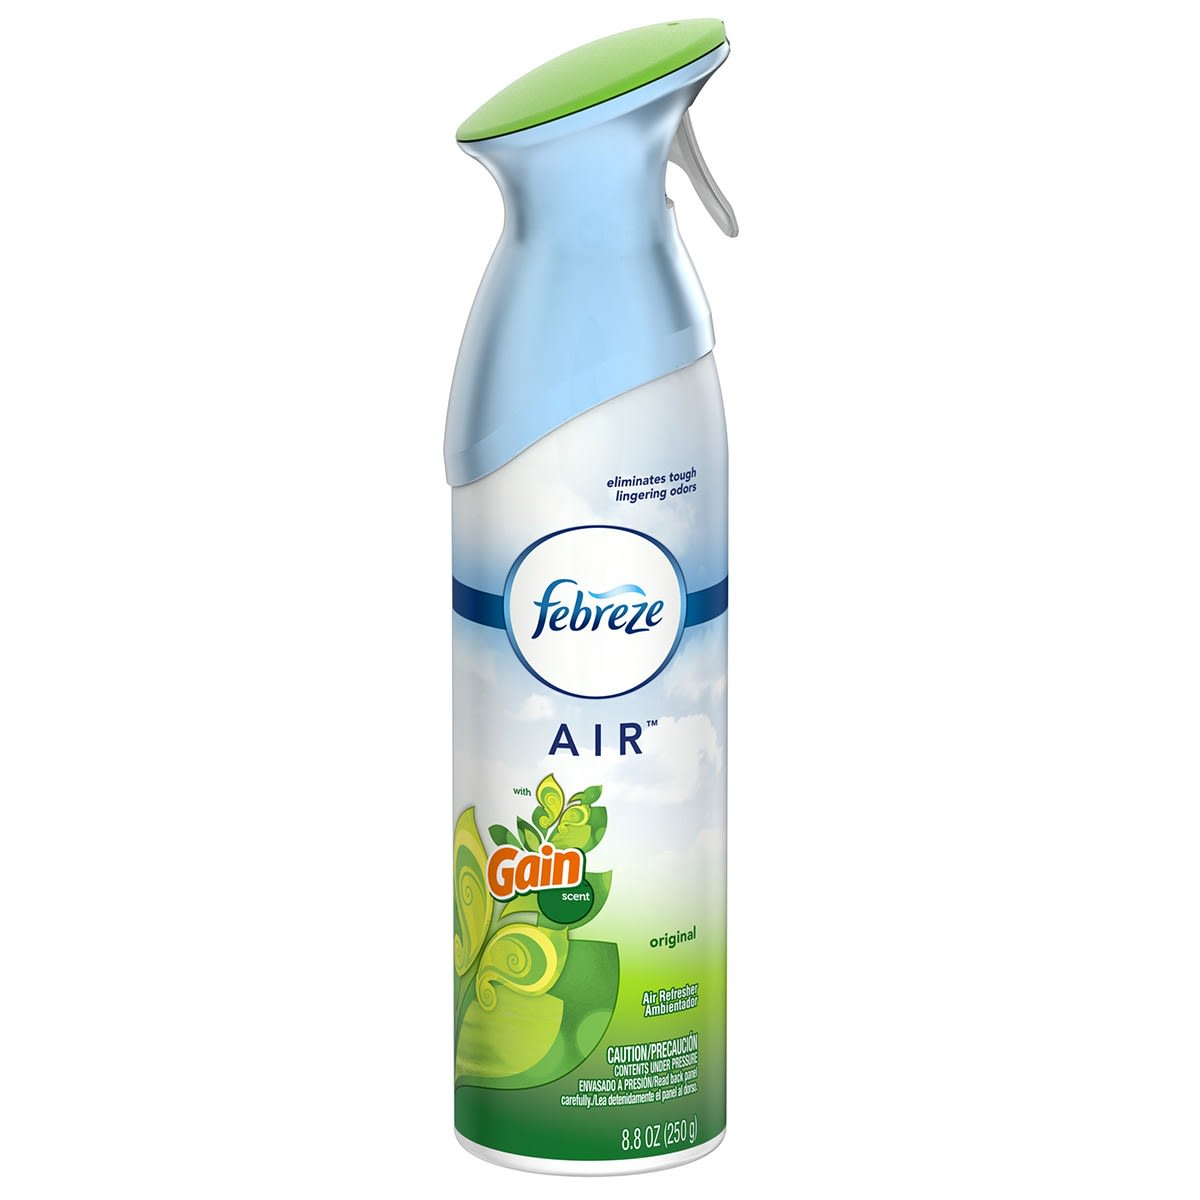 Air Effects Gain Original Scent